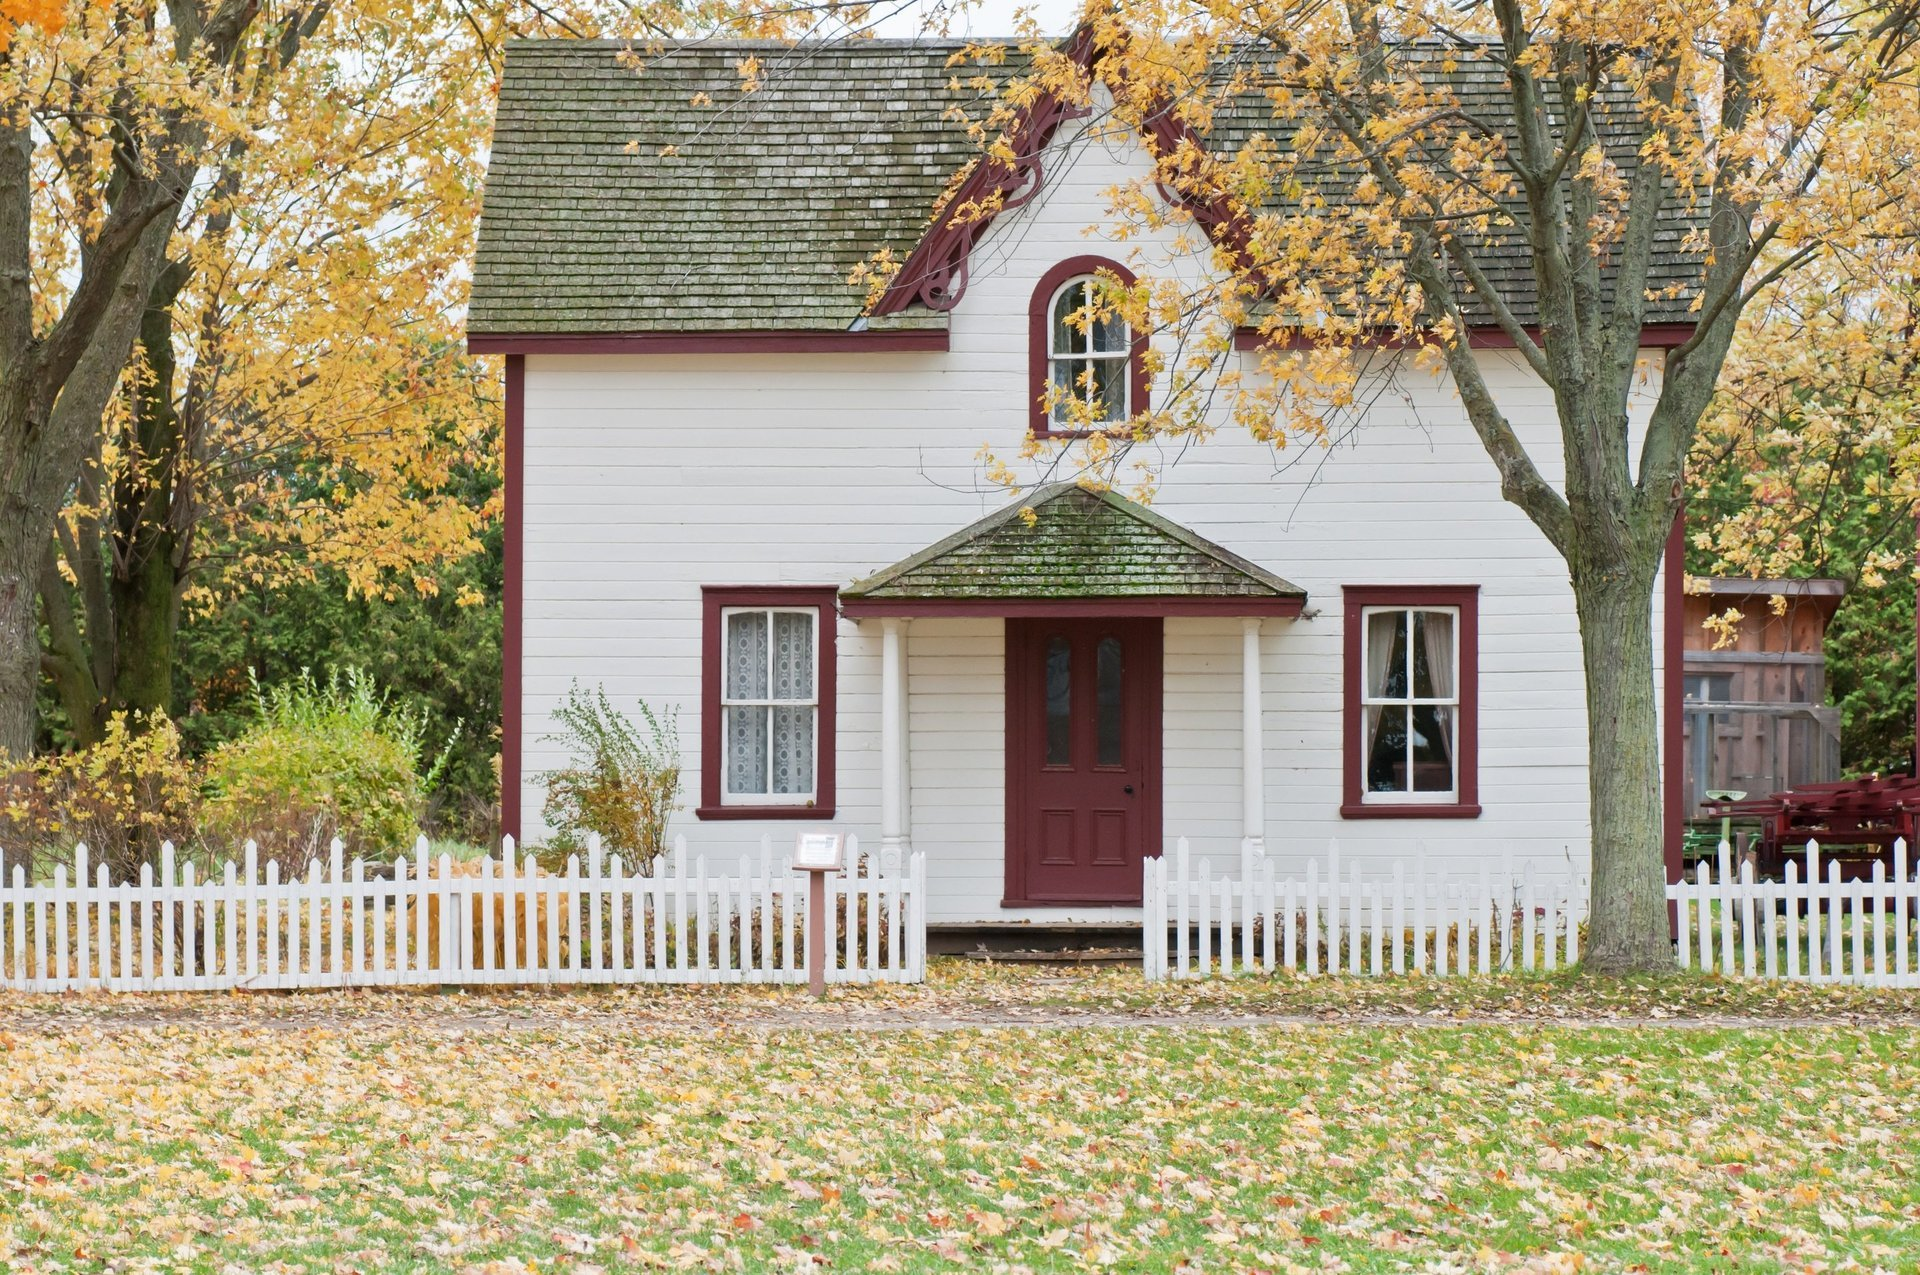 Tanguay Homes buys homes in Vermont